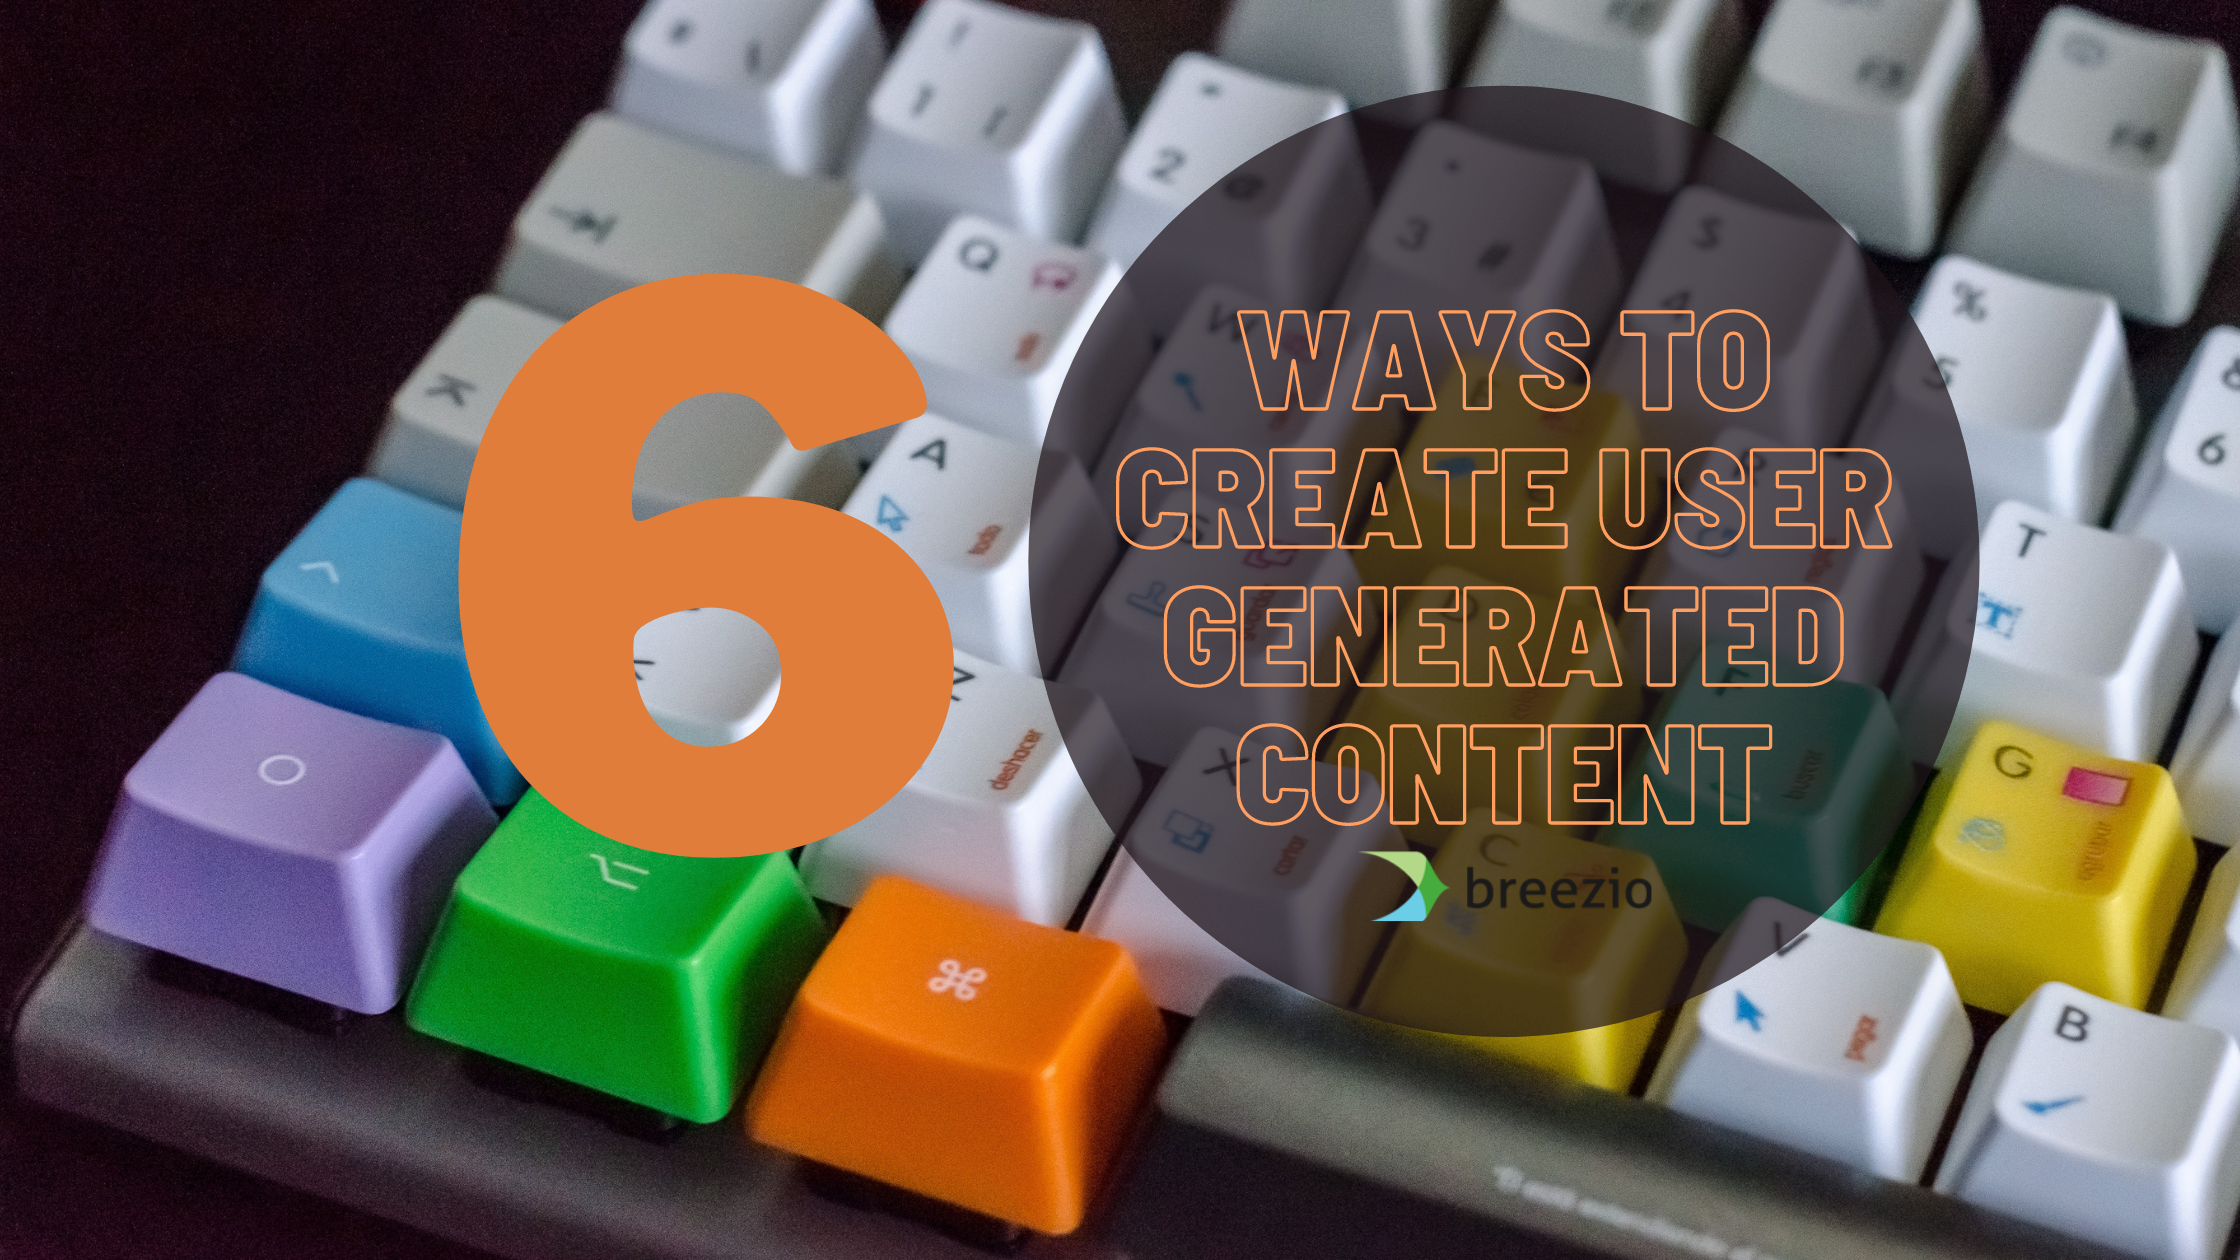 6 Ways To Create User Generated Content in Your Community